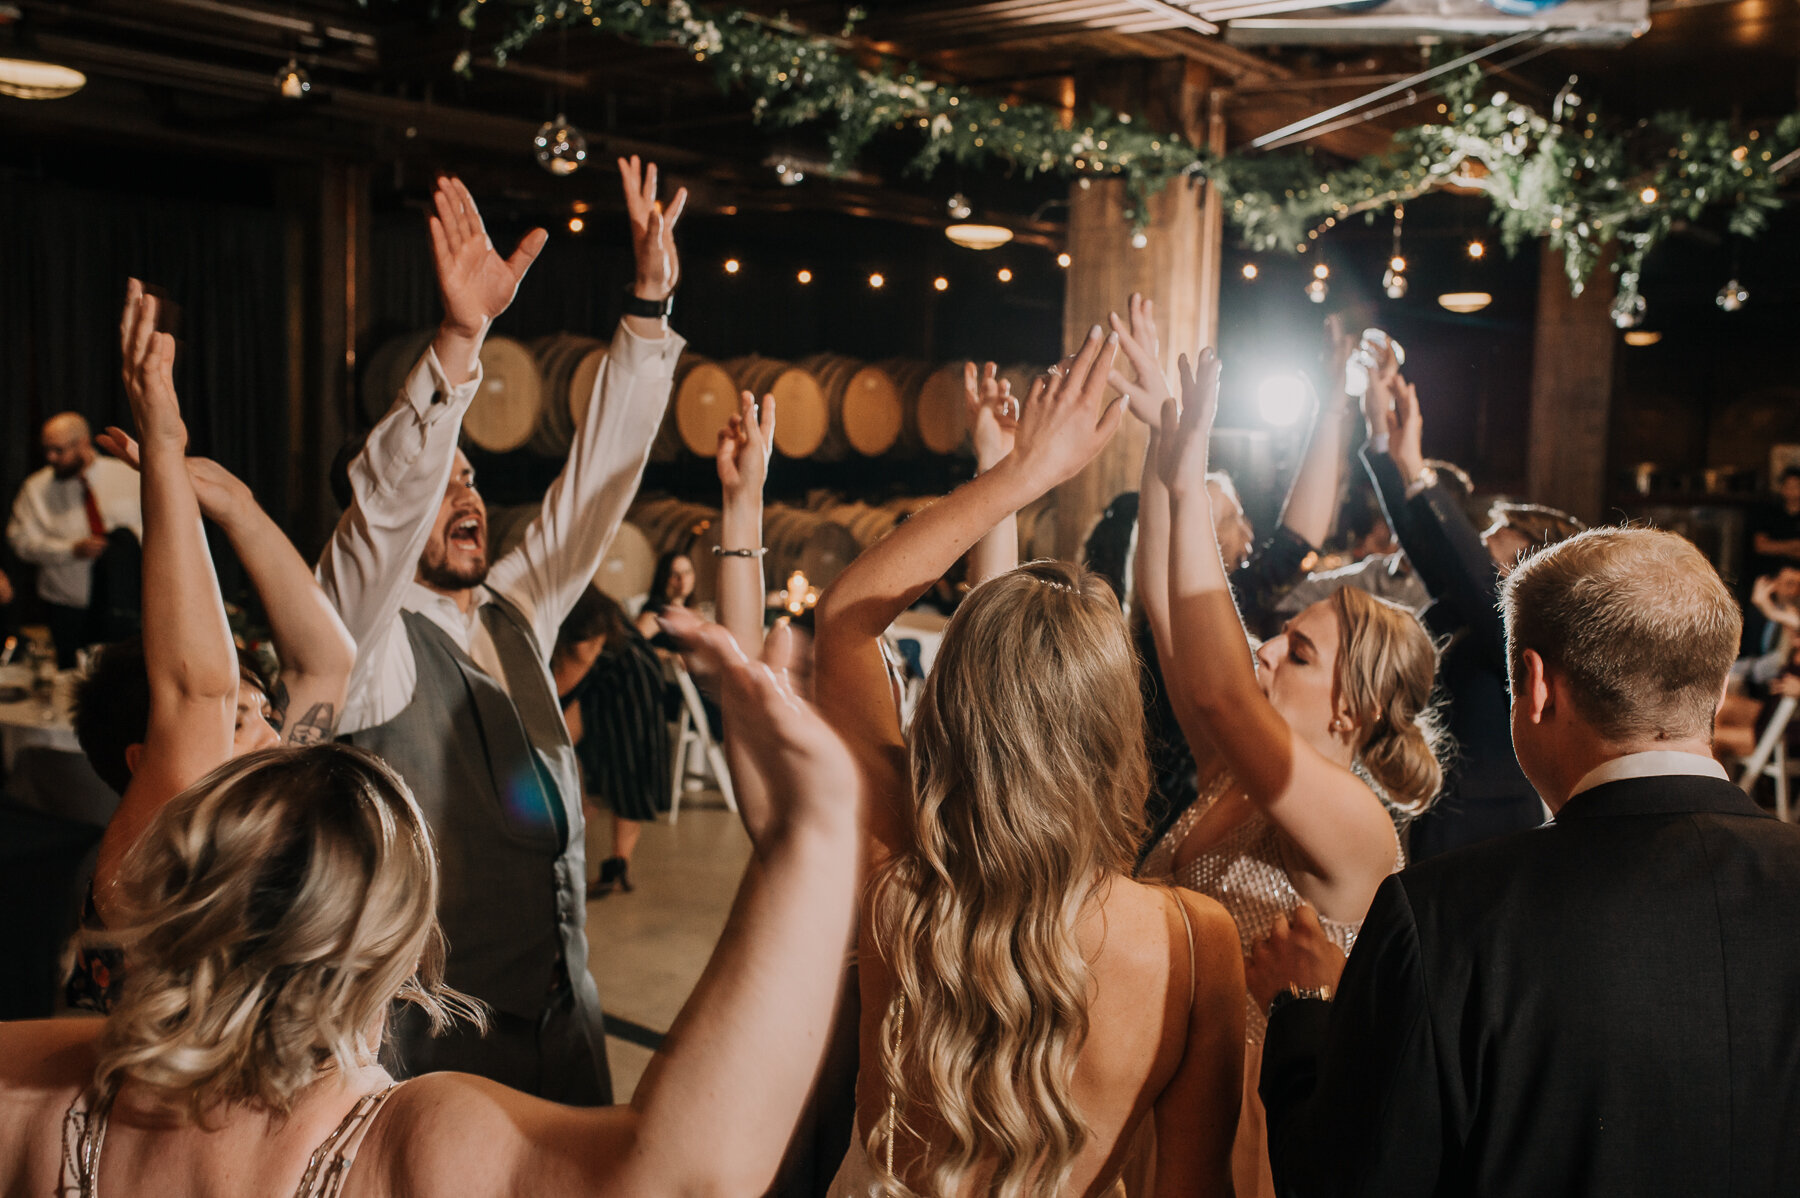 1294Swiftwater Cellars Wedding_Cle Elum Wedding_Montana Wedding Photographer_Kat & Kyle_September 15, 2018-732.jpg